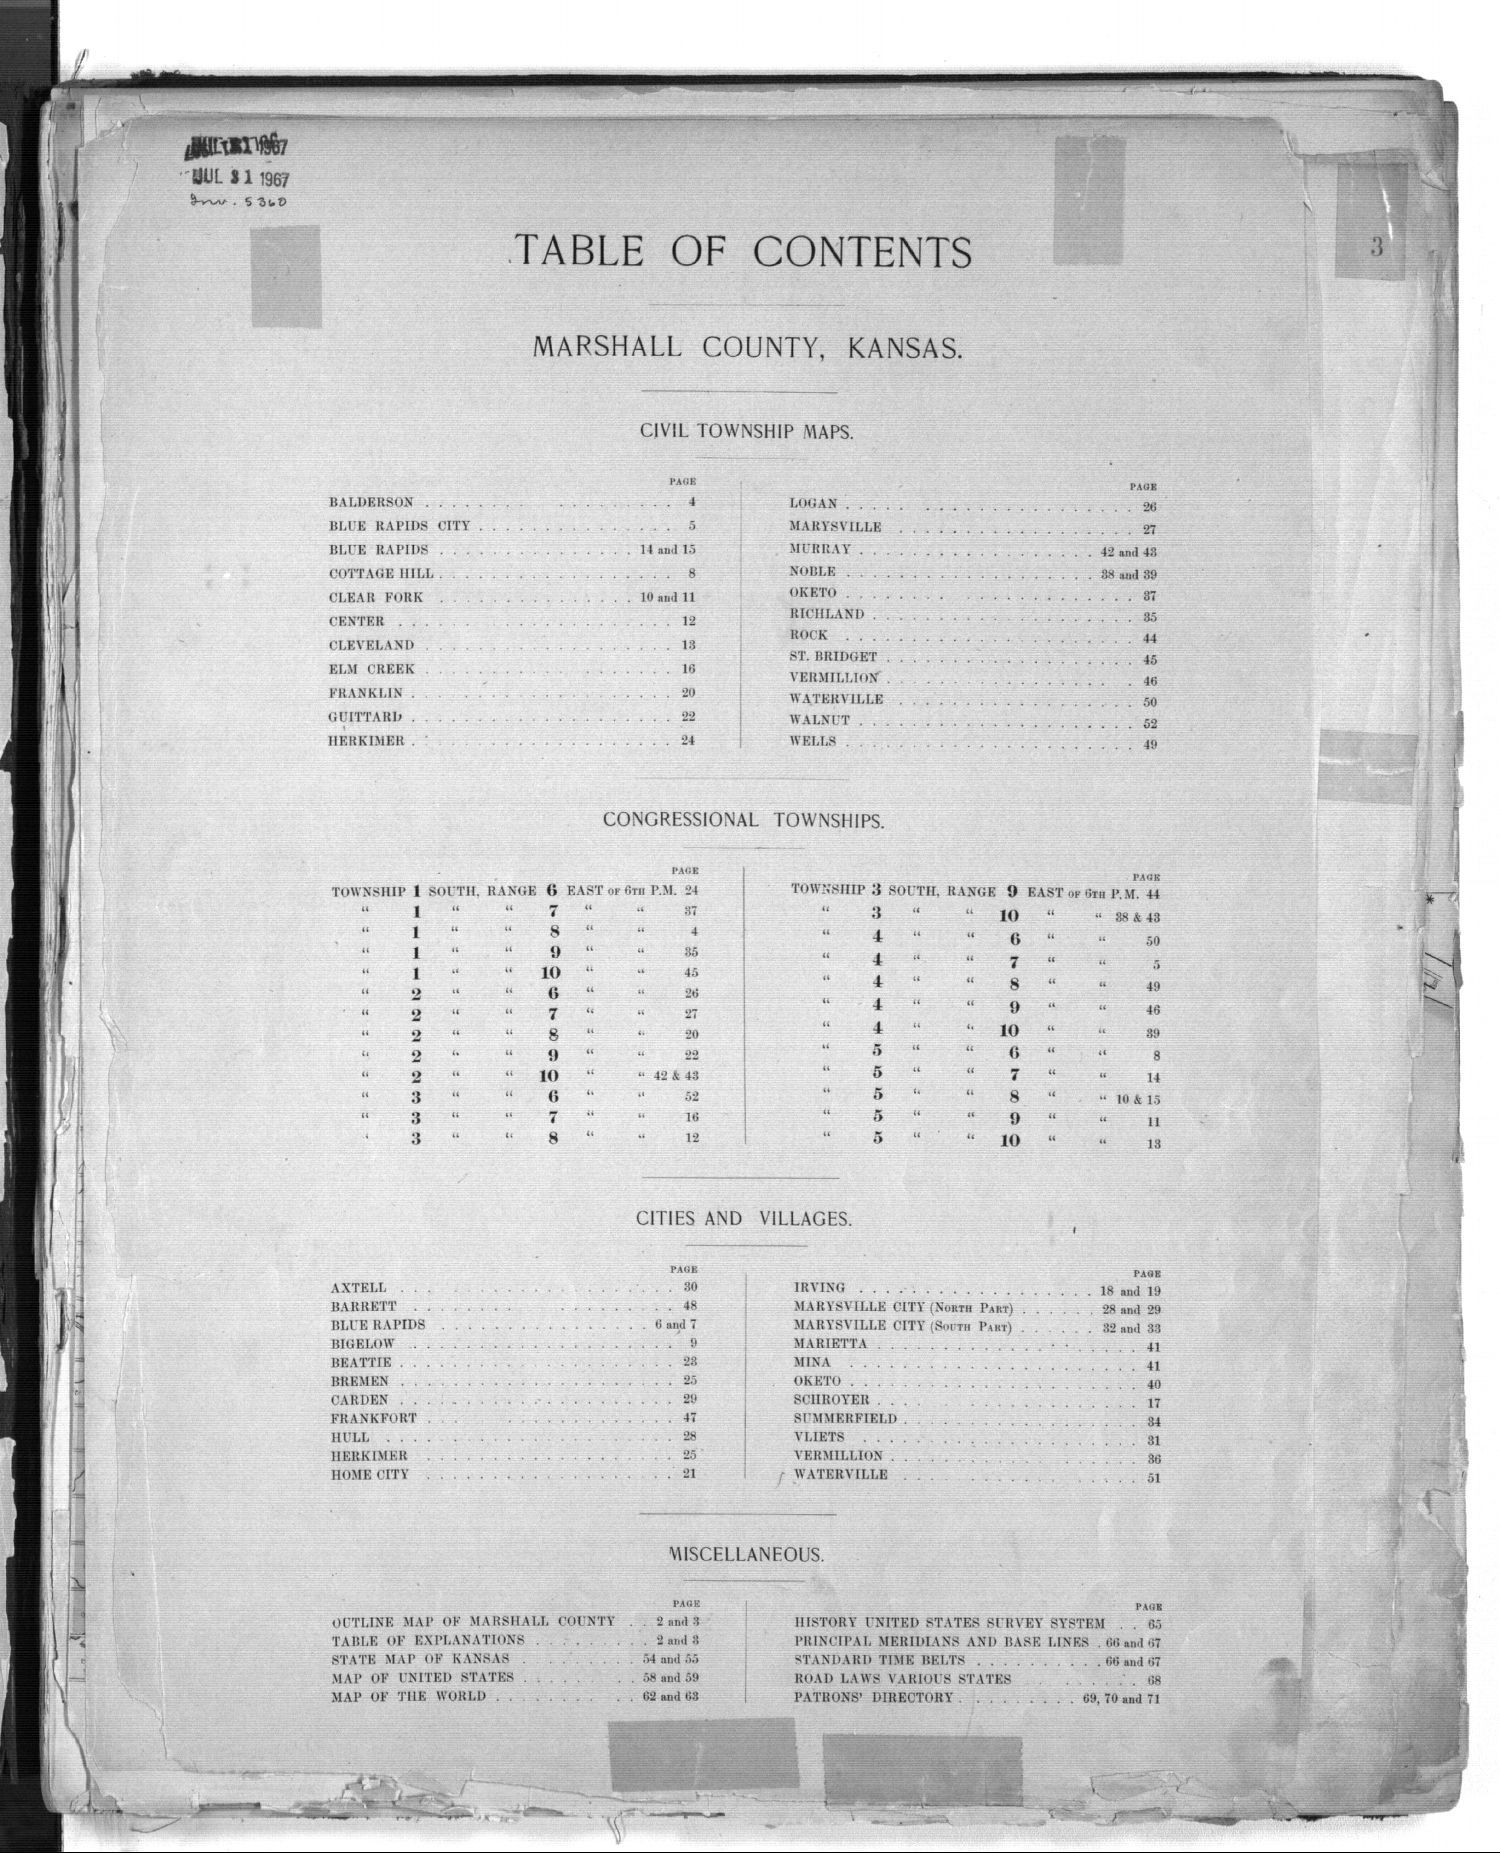 Plat book of Marshall County, Kansas - Table of Contents